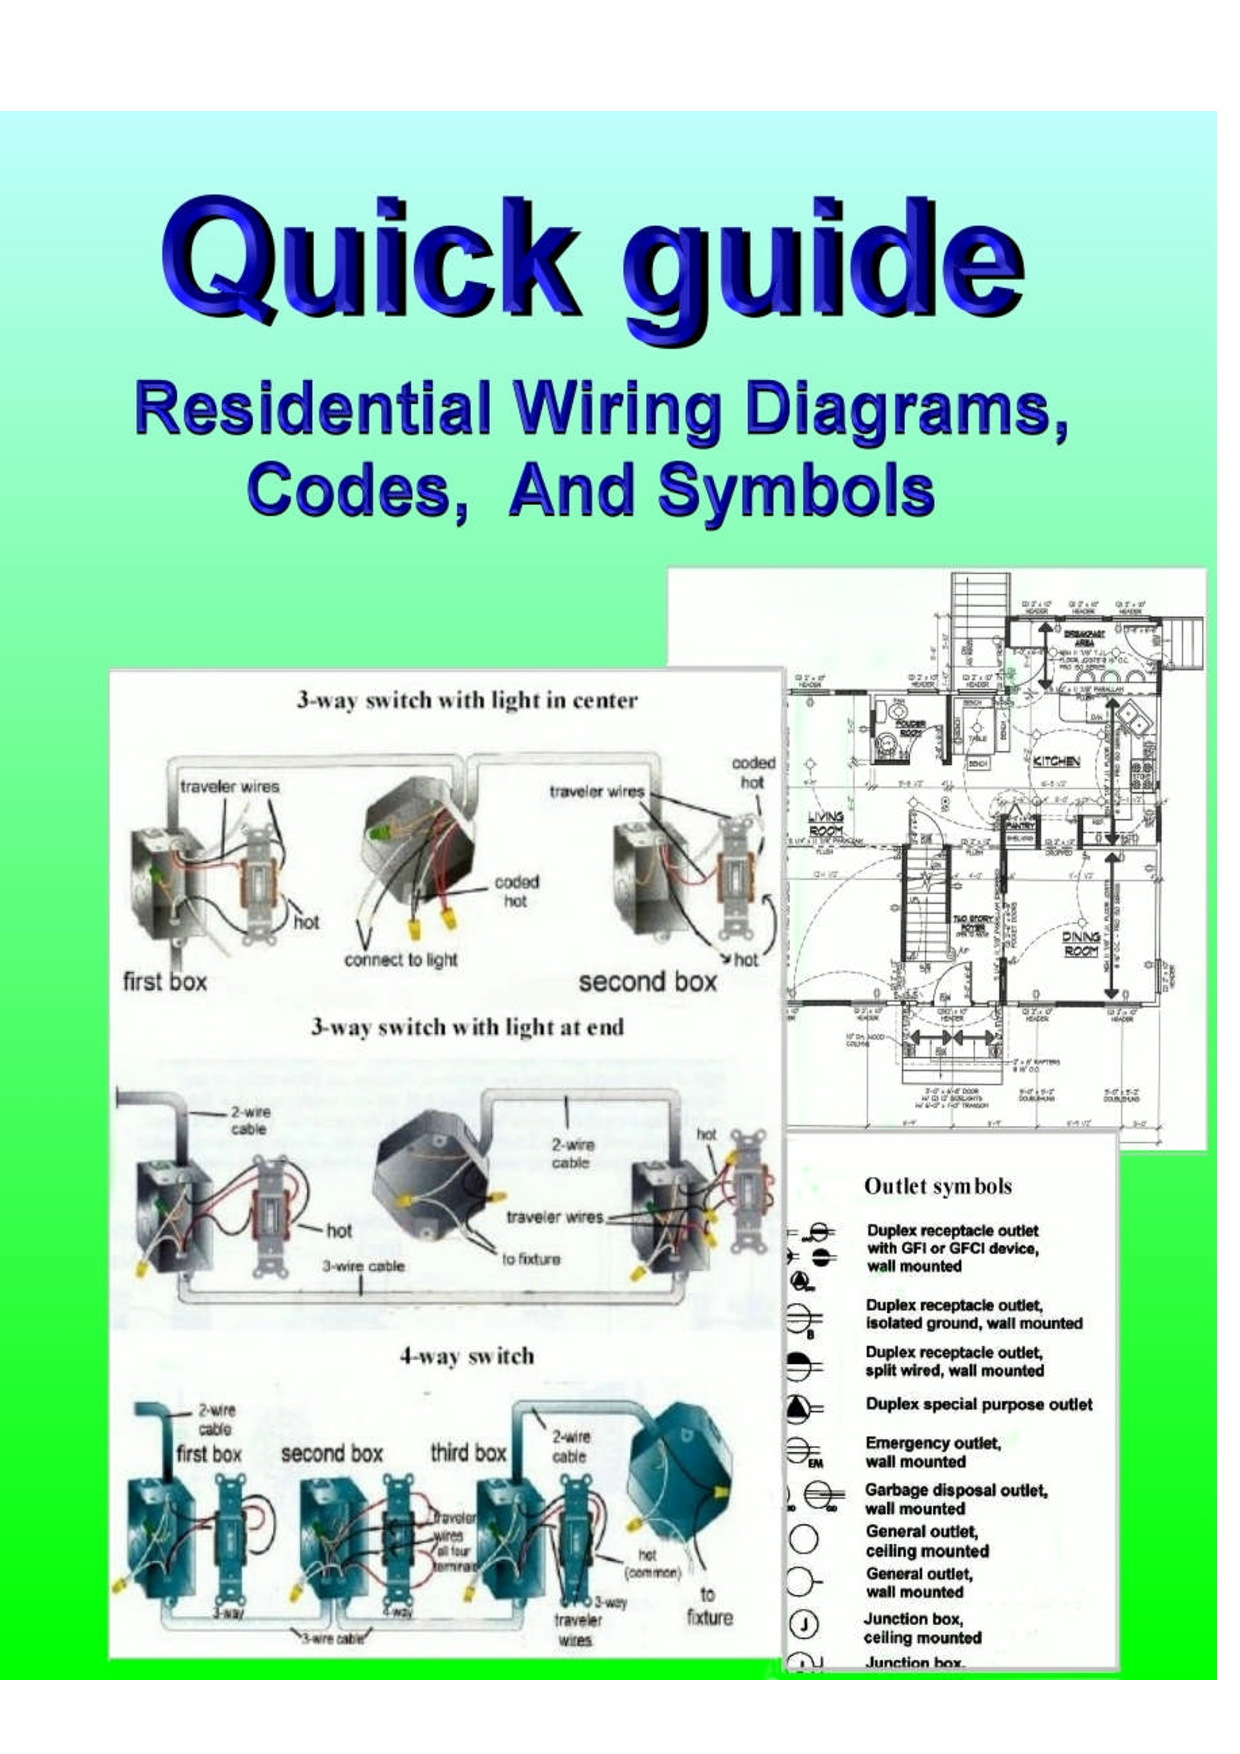 Home Electrical Wiring Diagrams | Odds & Ends | Home ... on